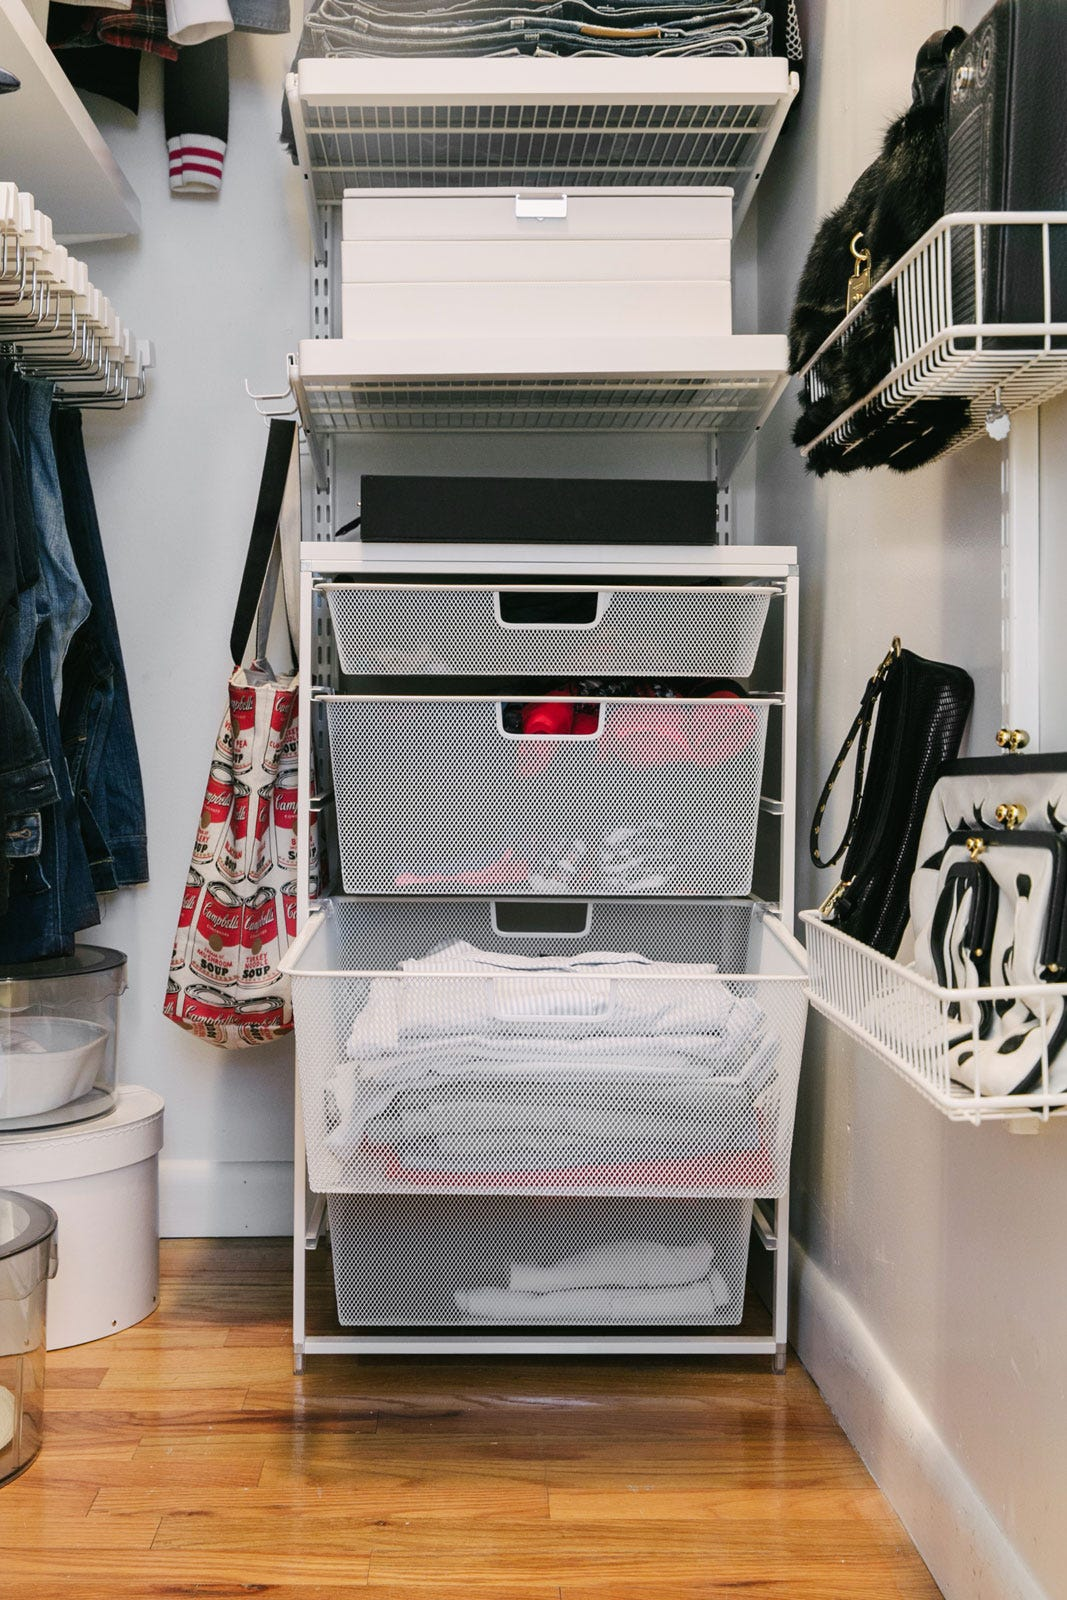 Walk In Closet Organization Ideas Small Walk In Closet Organization Tips